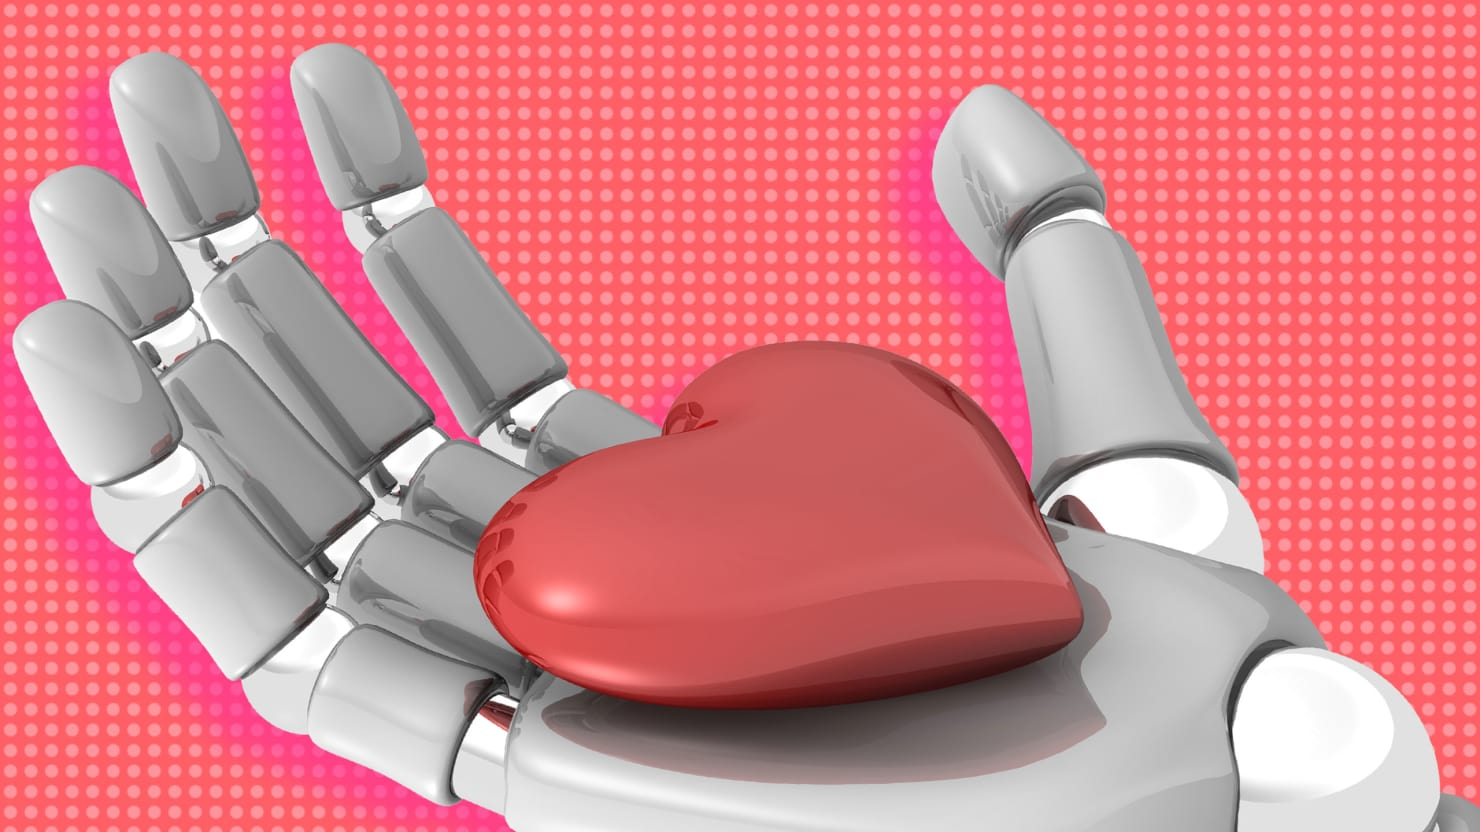 - Can Your Robot Love You? How scientists are betting on unconditional love as the greatest AI hack...